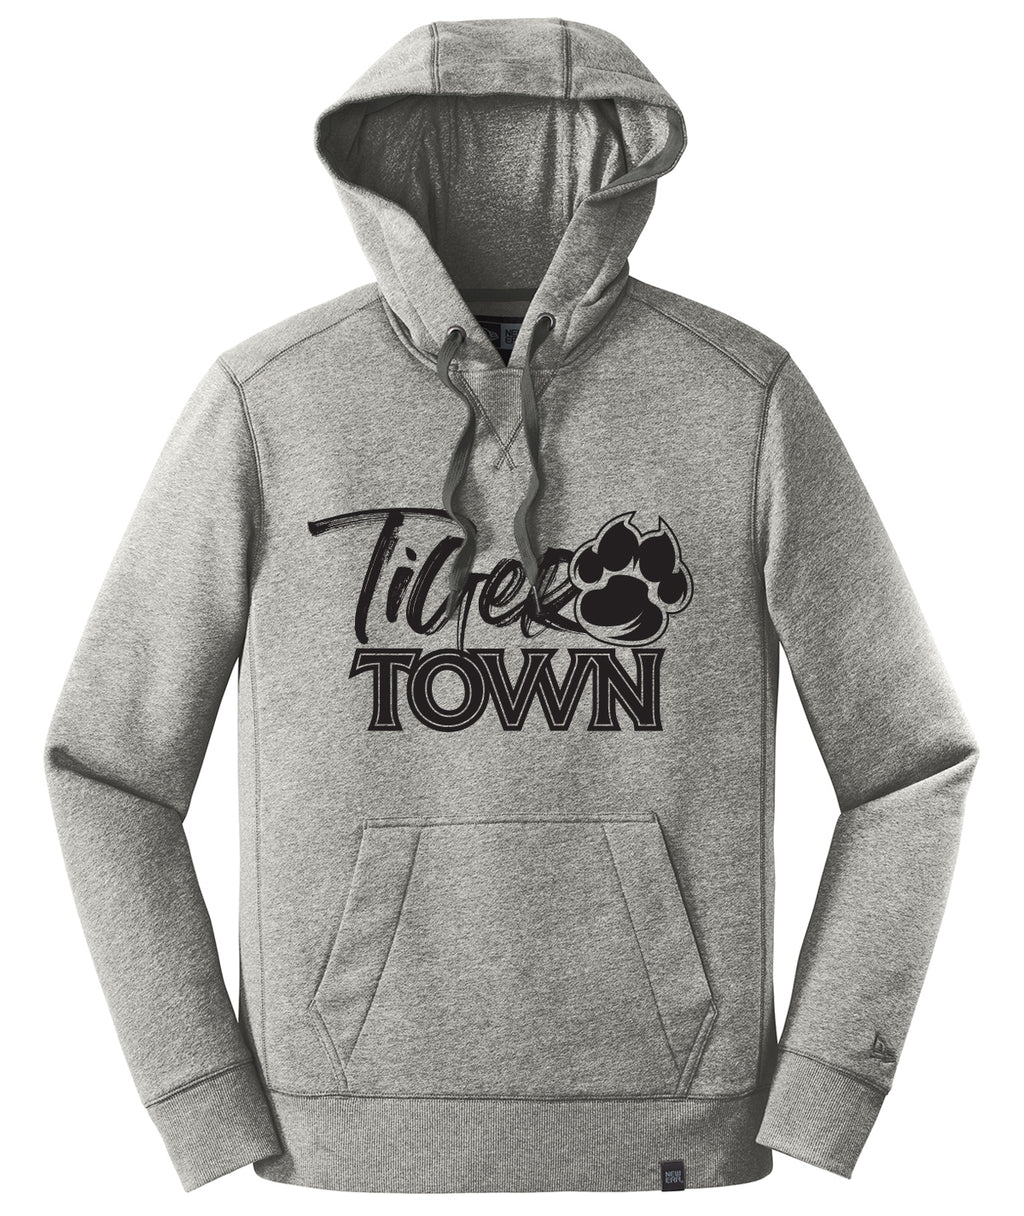 Tiger Town Hooded Sweatshirt